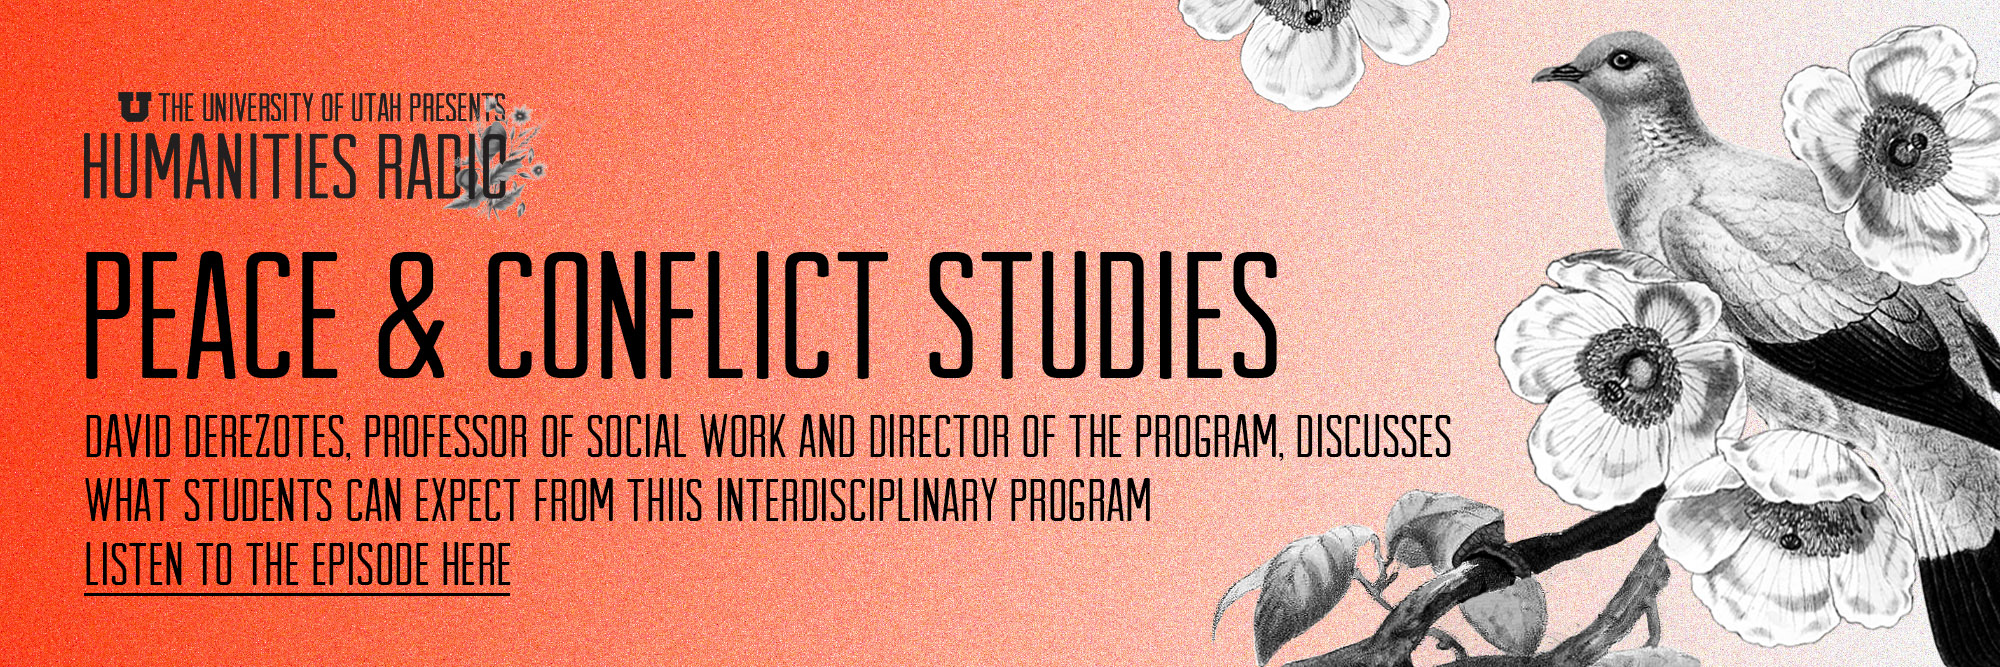 Humanities Radio - Peace and Conflict Studies - Listen to the episode here.